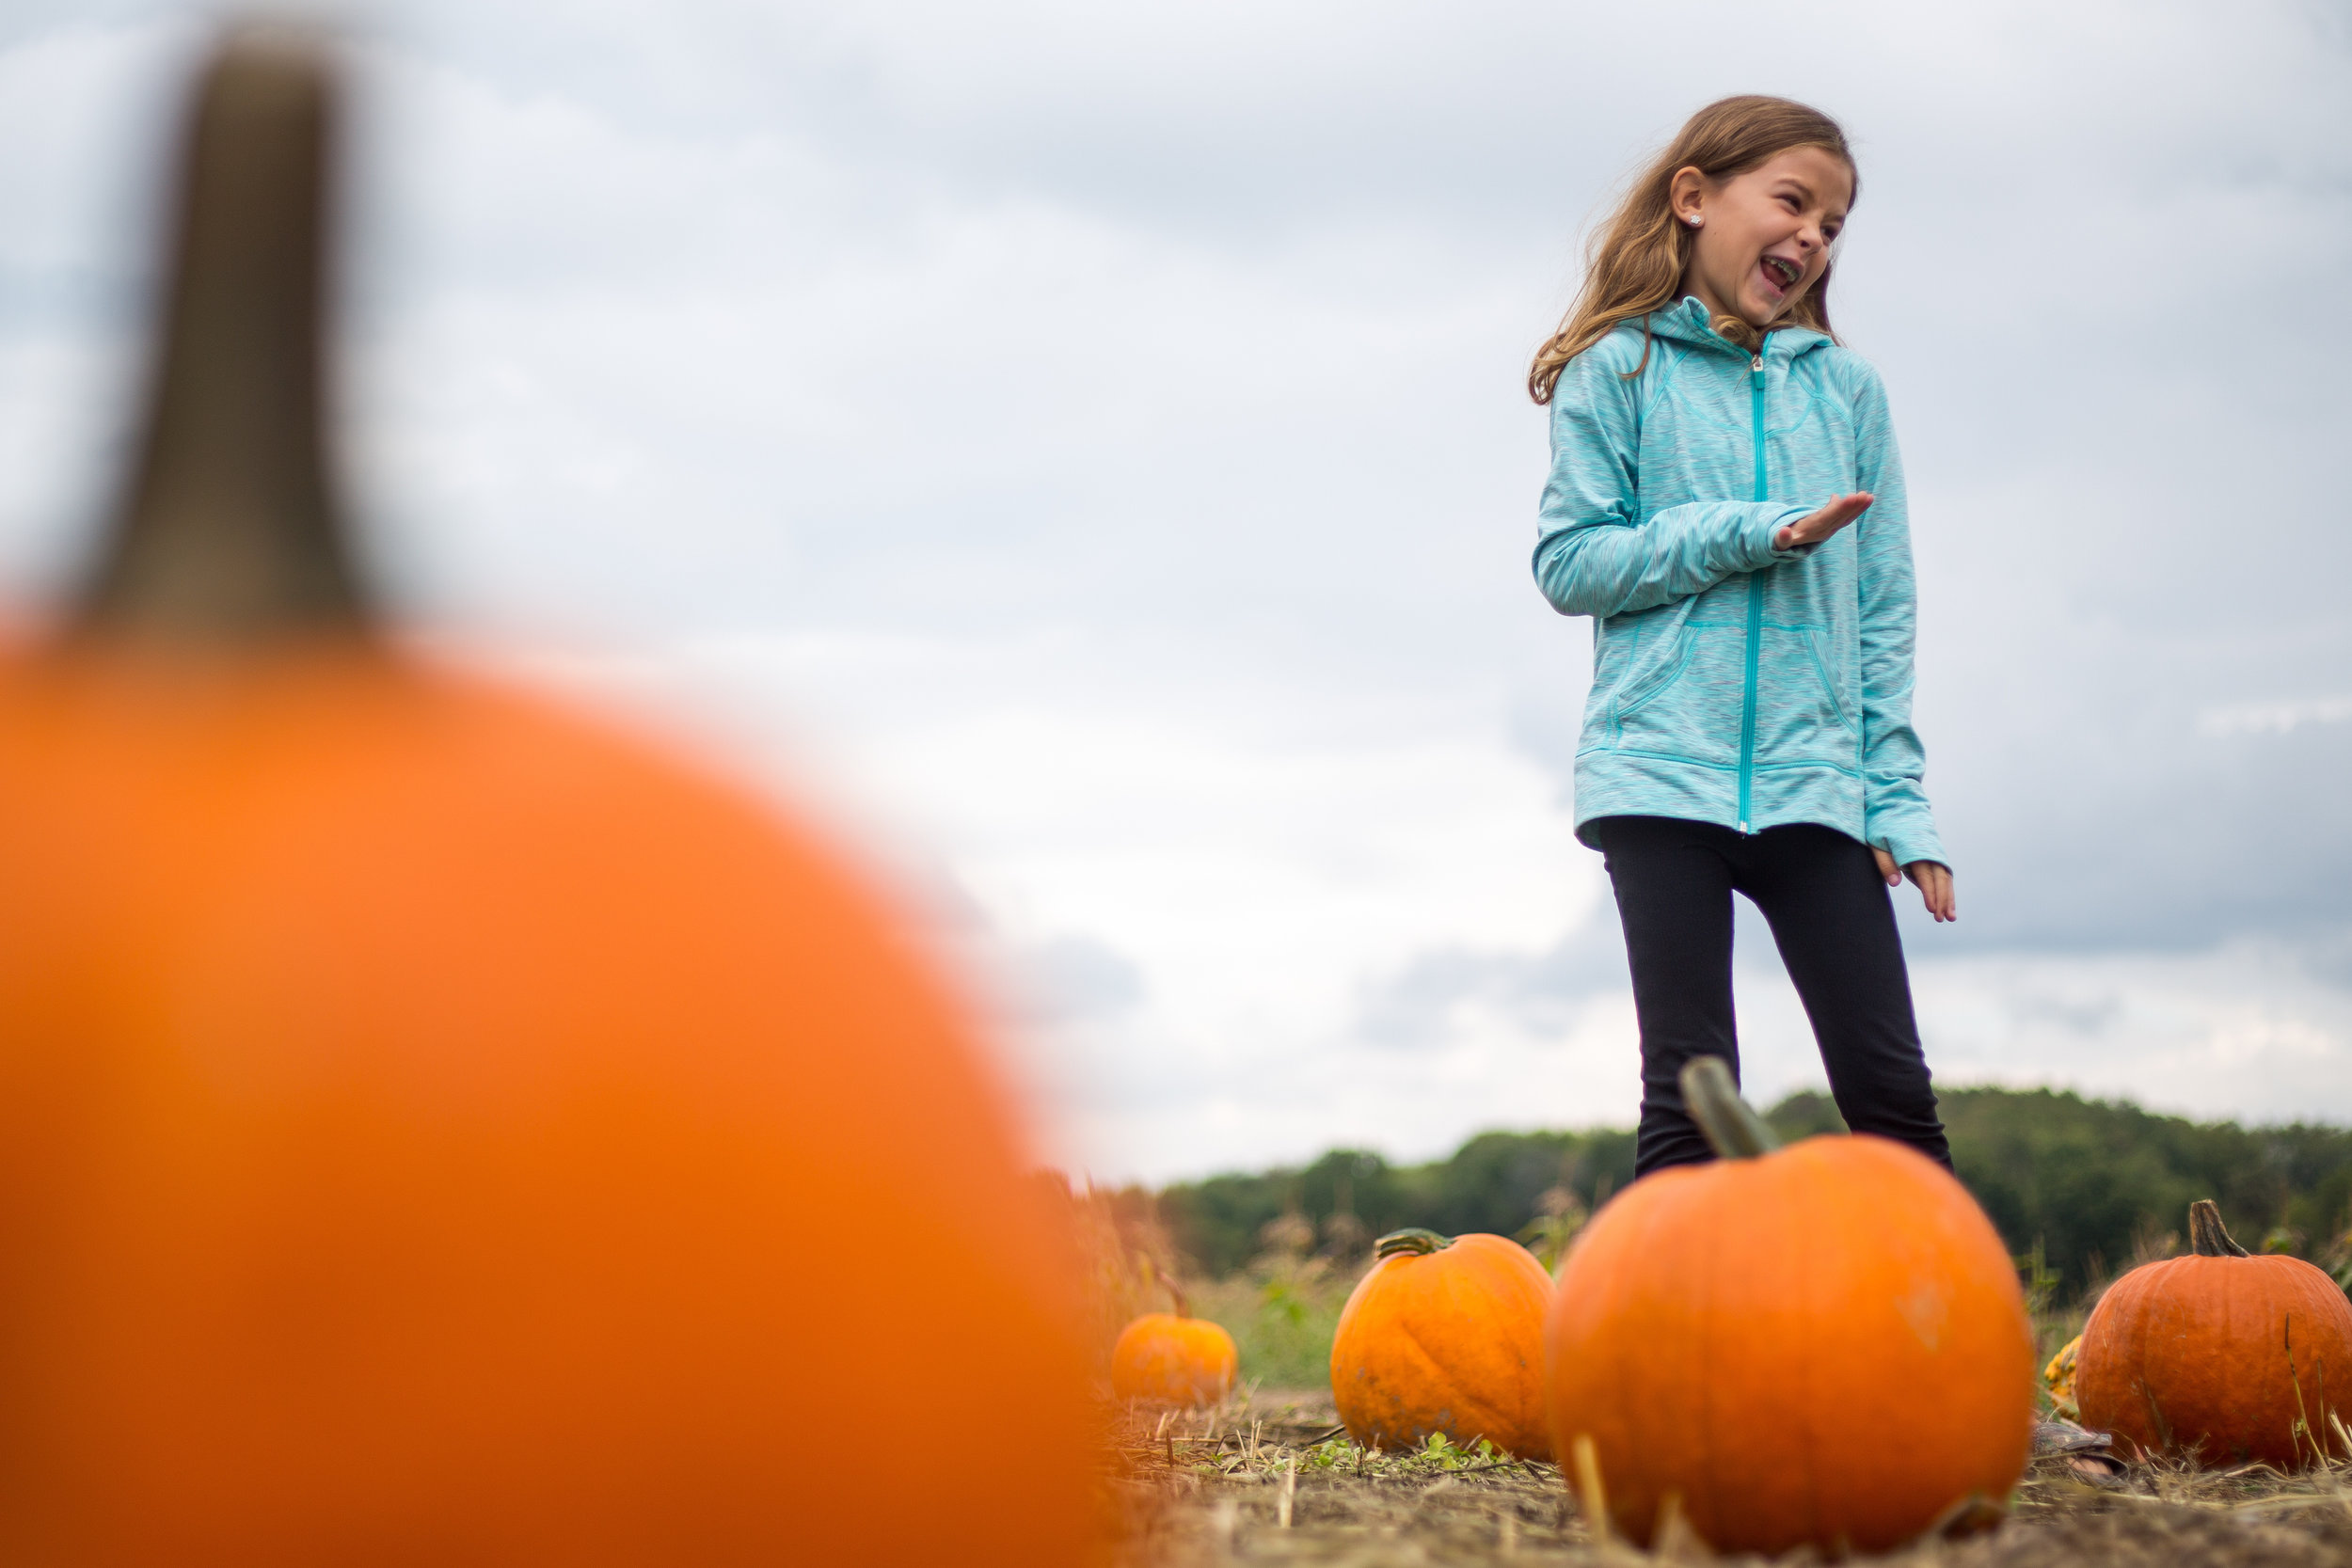 Ayla Sterner, 8, laughs as she finds the perfect pumpkin at Wise Farm in North Sweickley on Sunday afternoon.